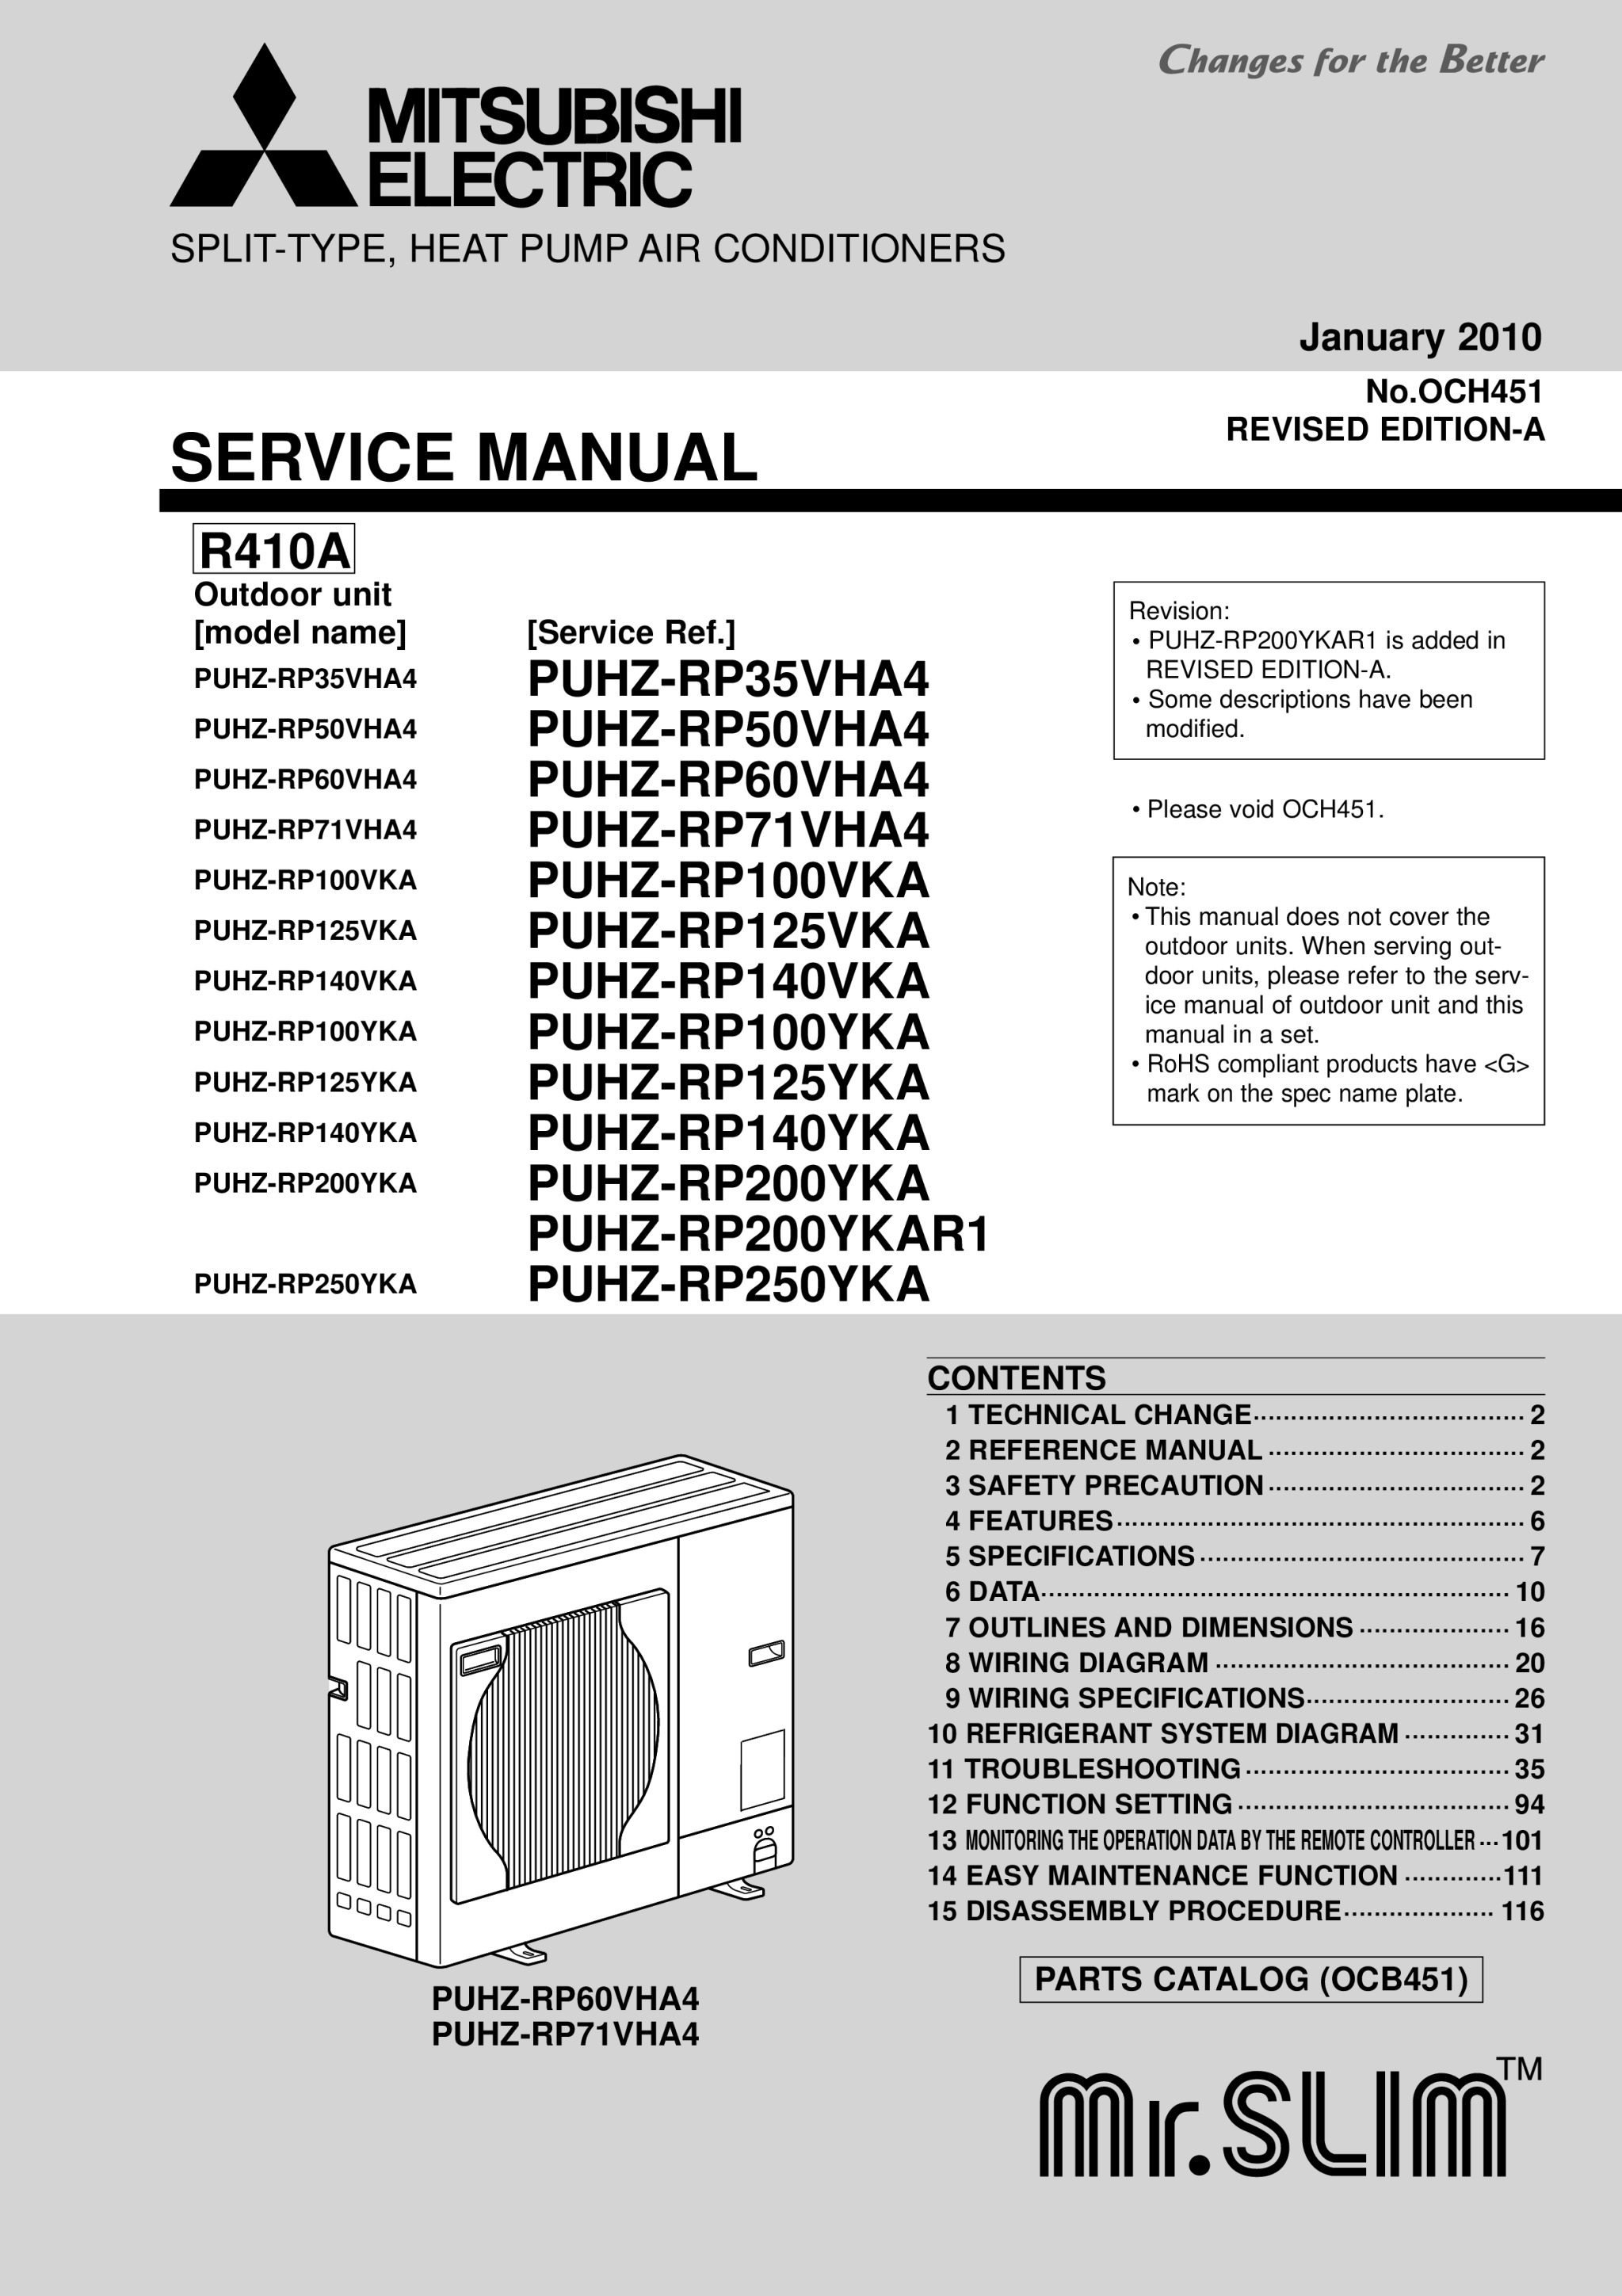 Puhz rp200 250 service manual och451a mitsubishi electric page 1 zoom in buycottarizona Choice Image